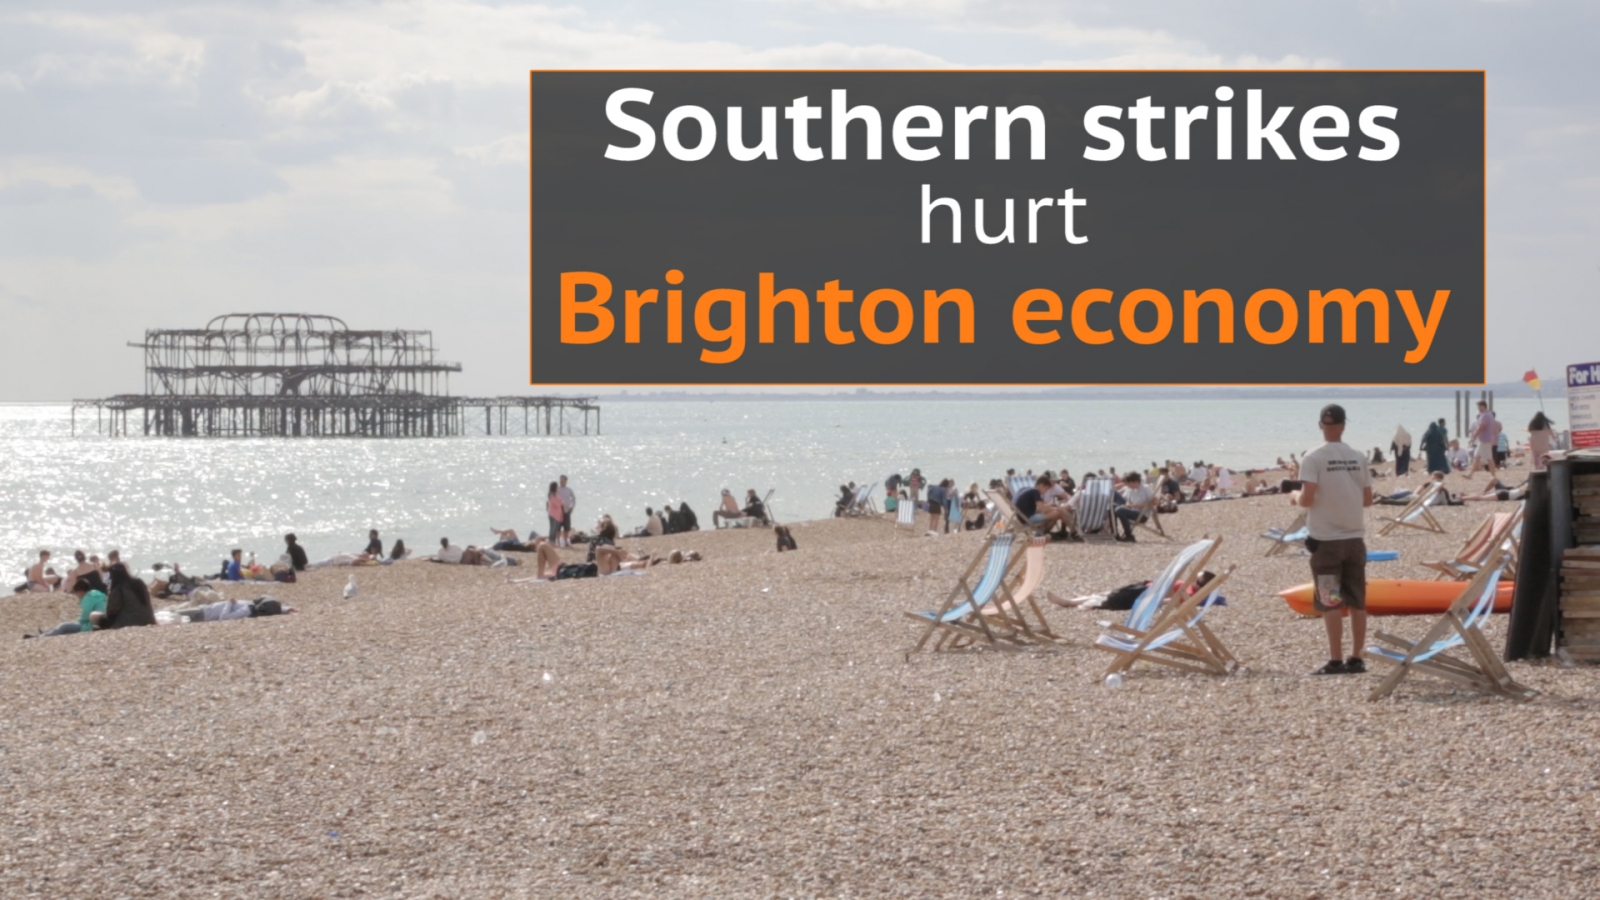 Southern rail strike: Brighton economy suffering due to travel chaos